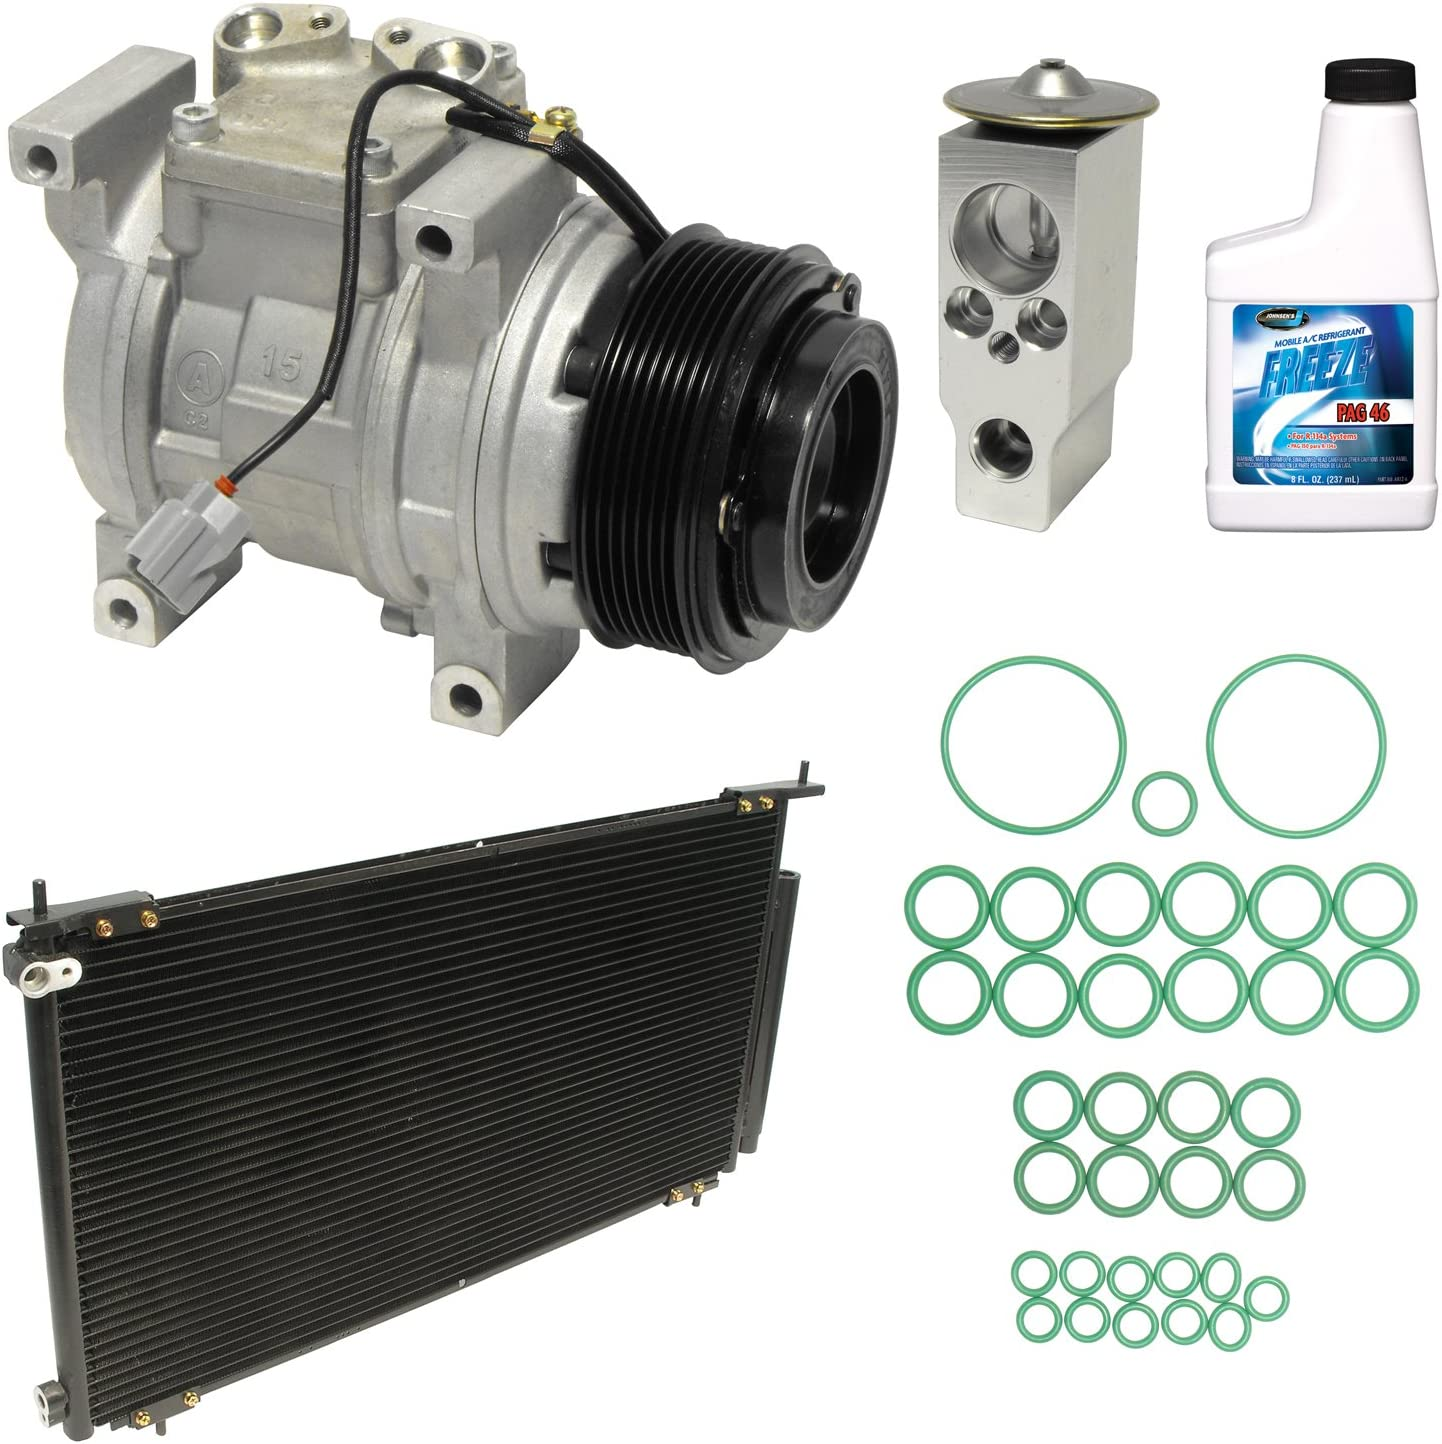 Universal Air Conditioner KT 4785A Kit A Japan Maker New Sale price C Compressor Component